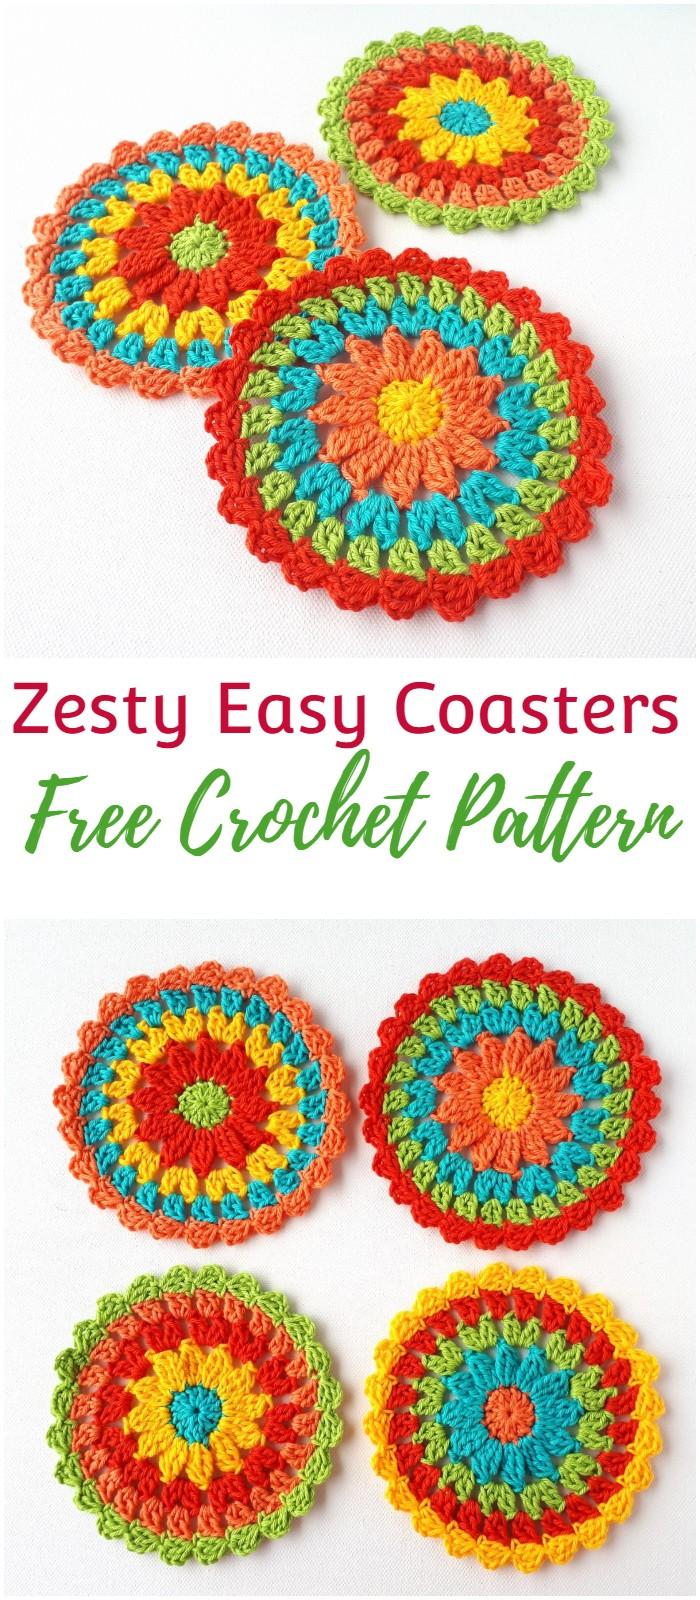 Zesty Coasters – Easy Free Crochet Pattern